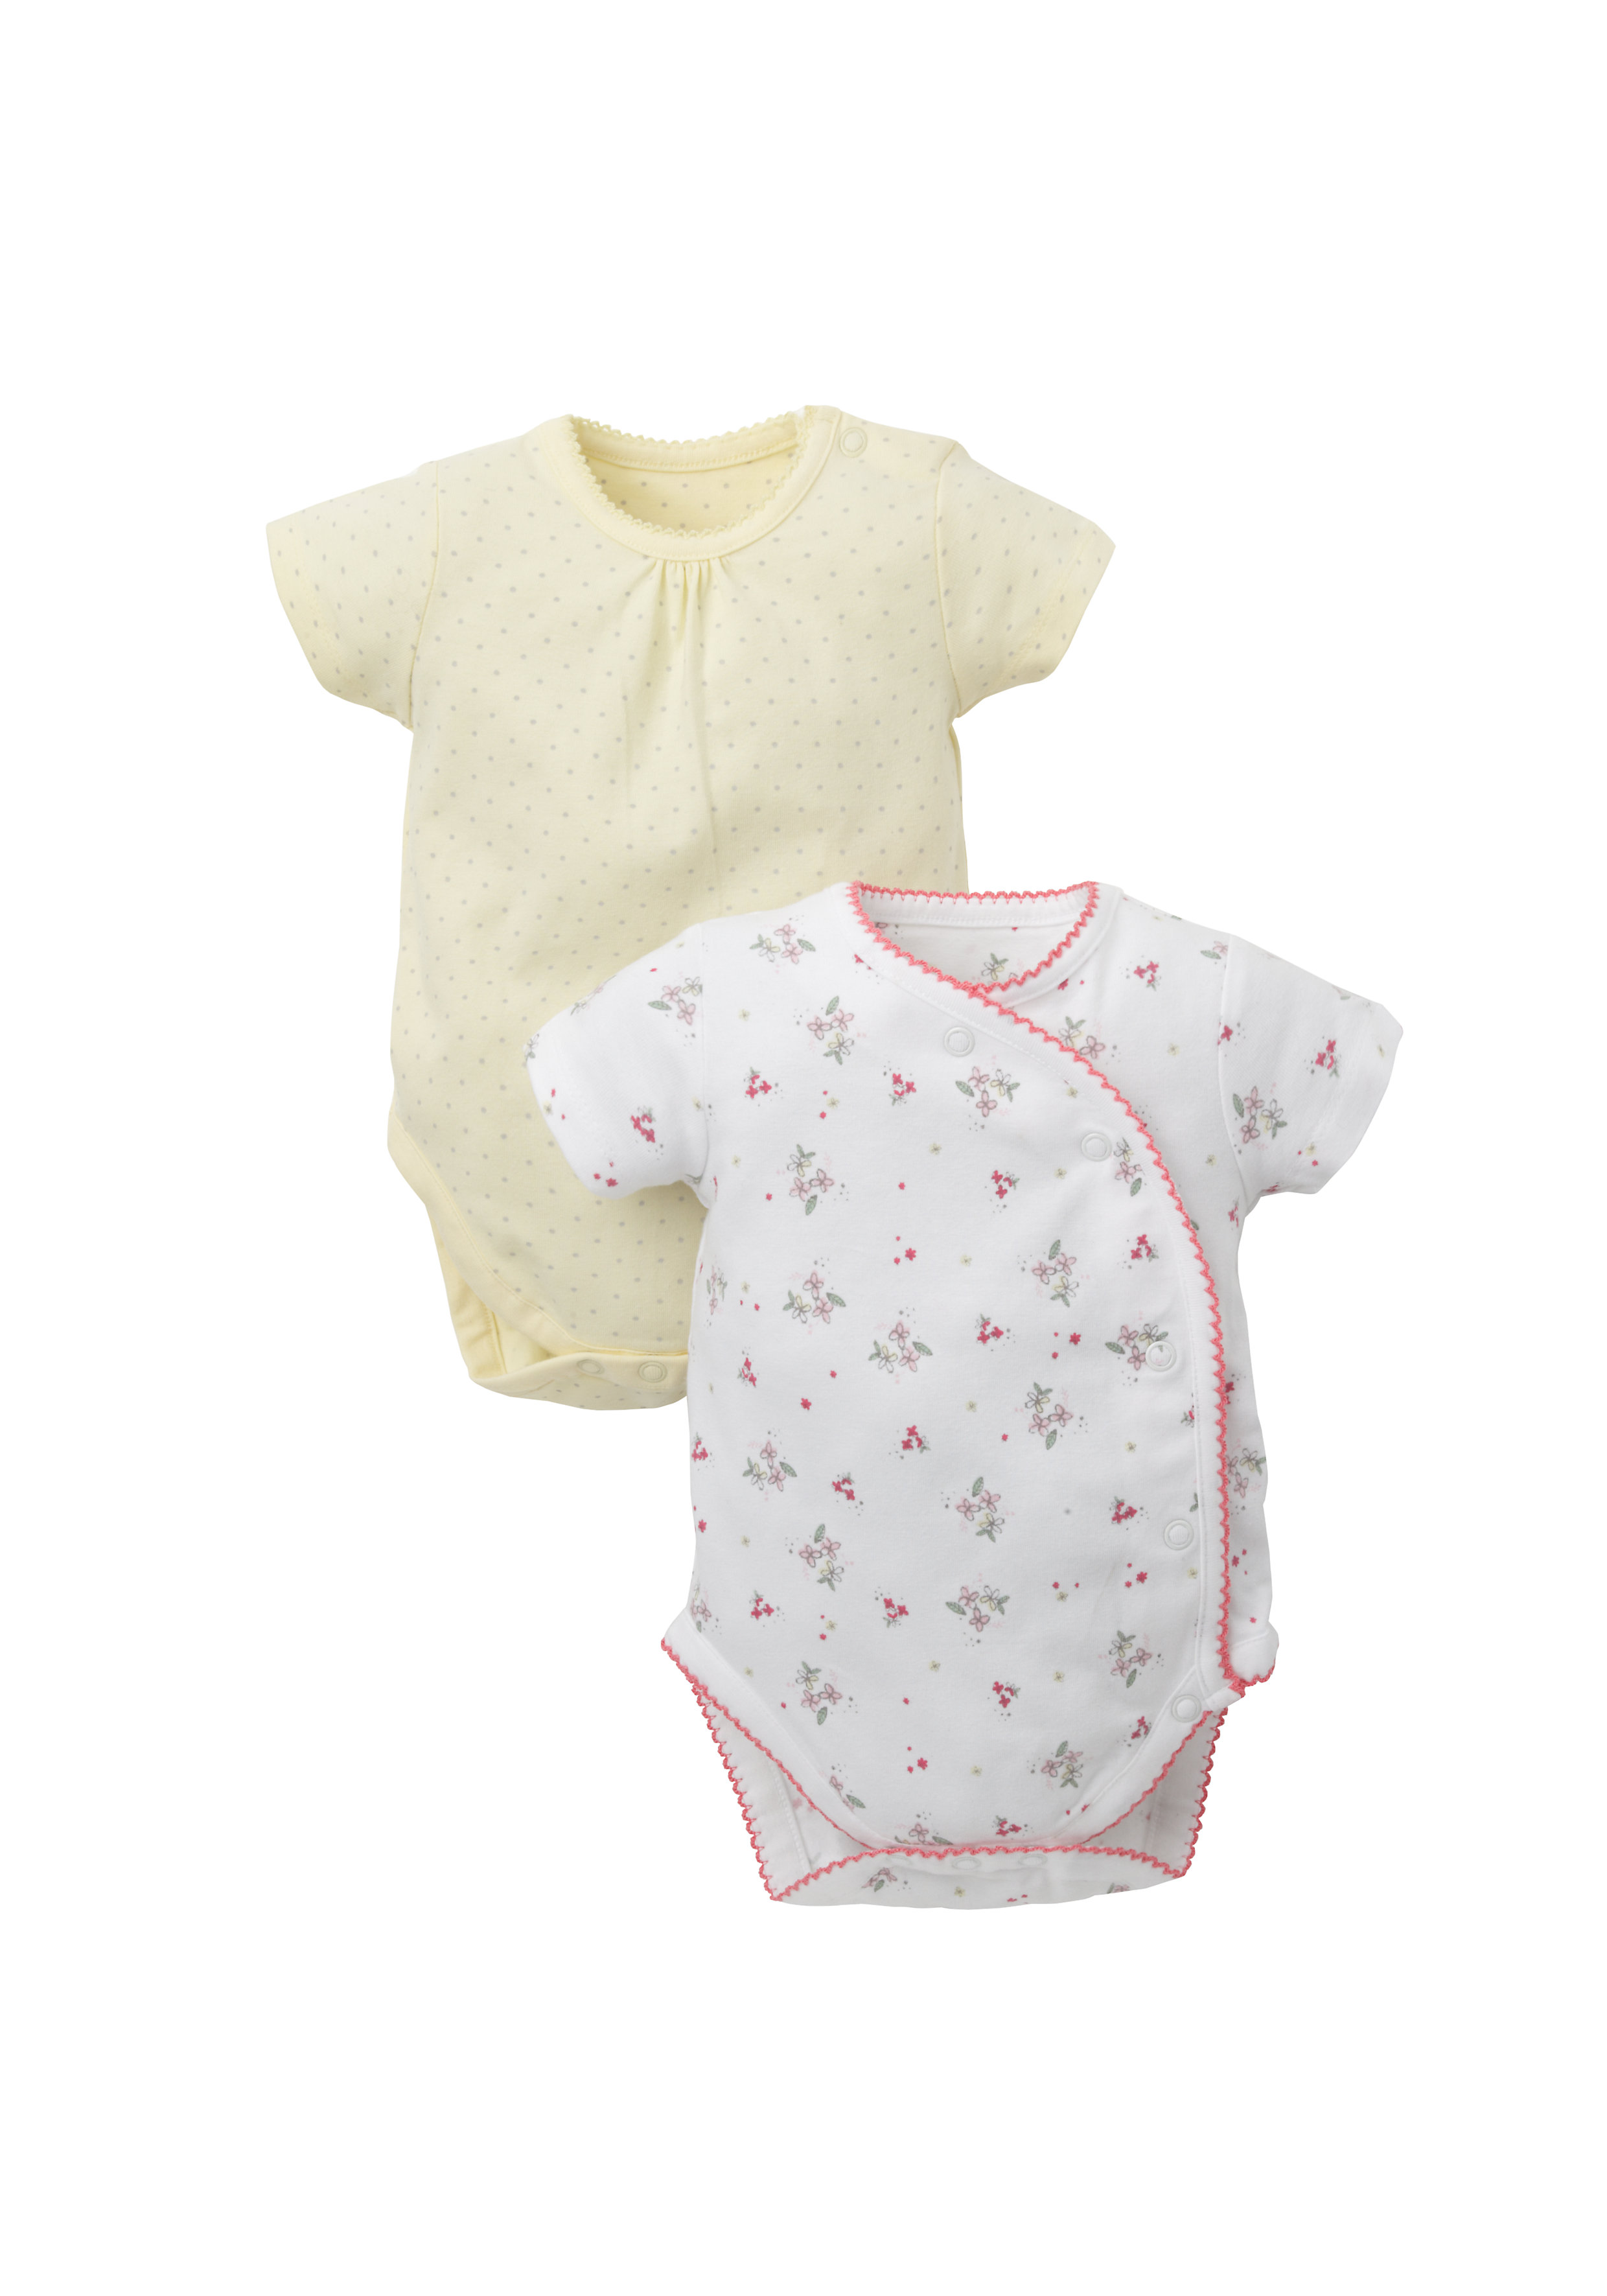 Mothercare | Girls Half Sleeves Bodysuit Floral Print - Pack Of 2 - White